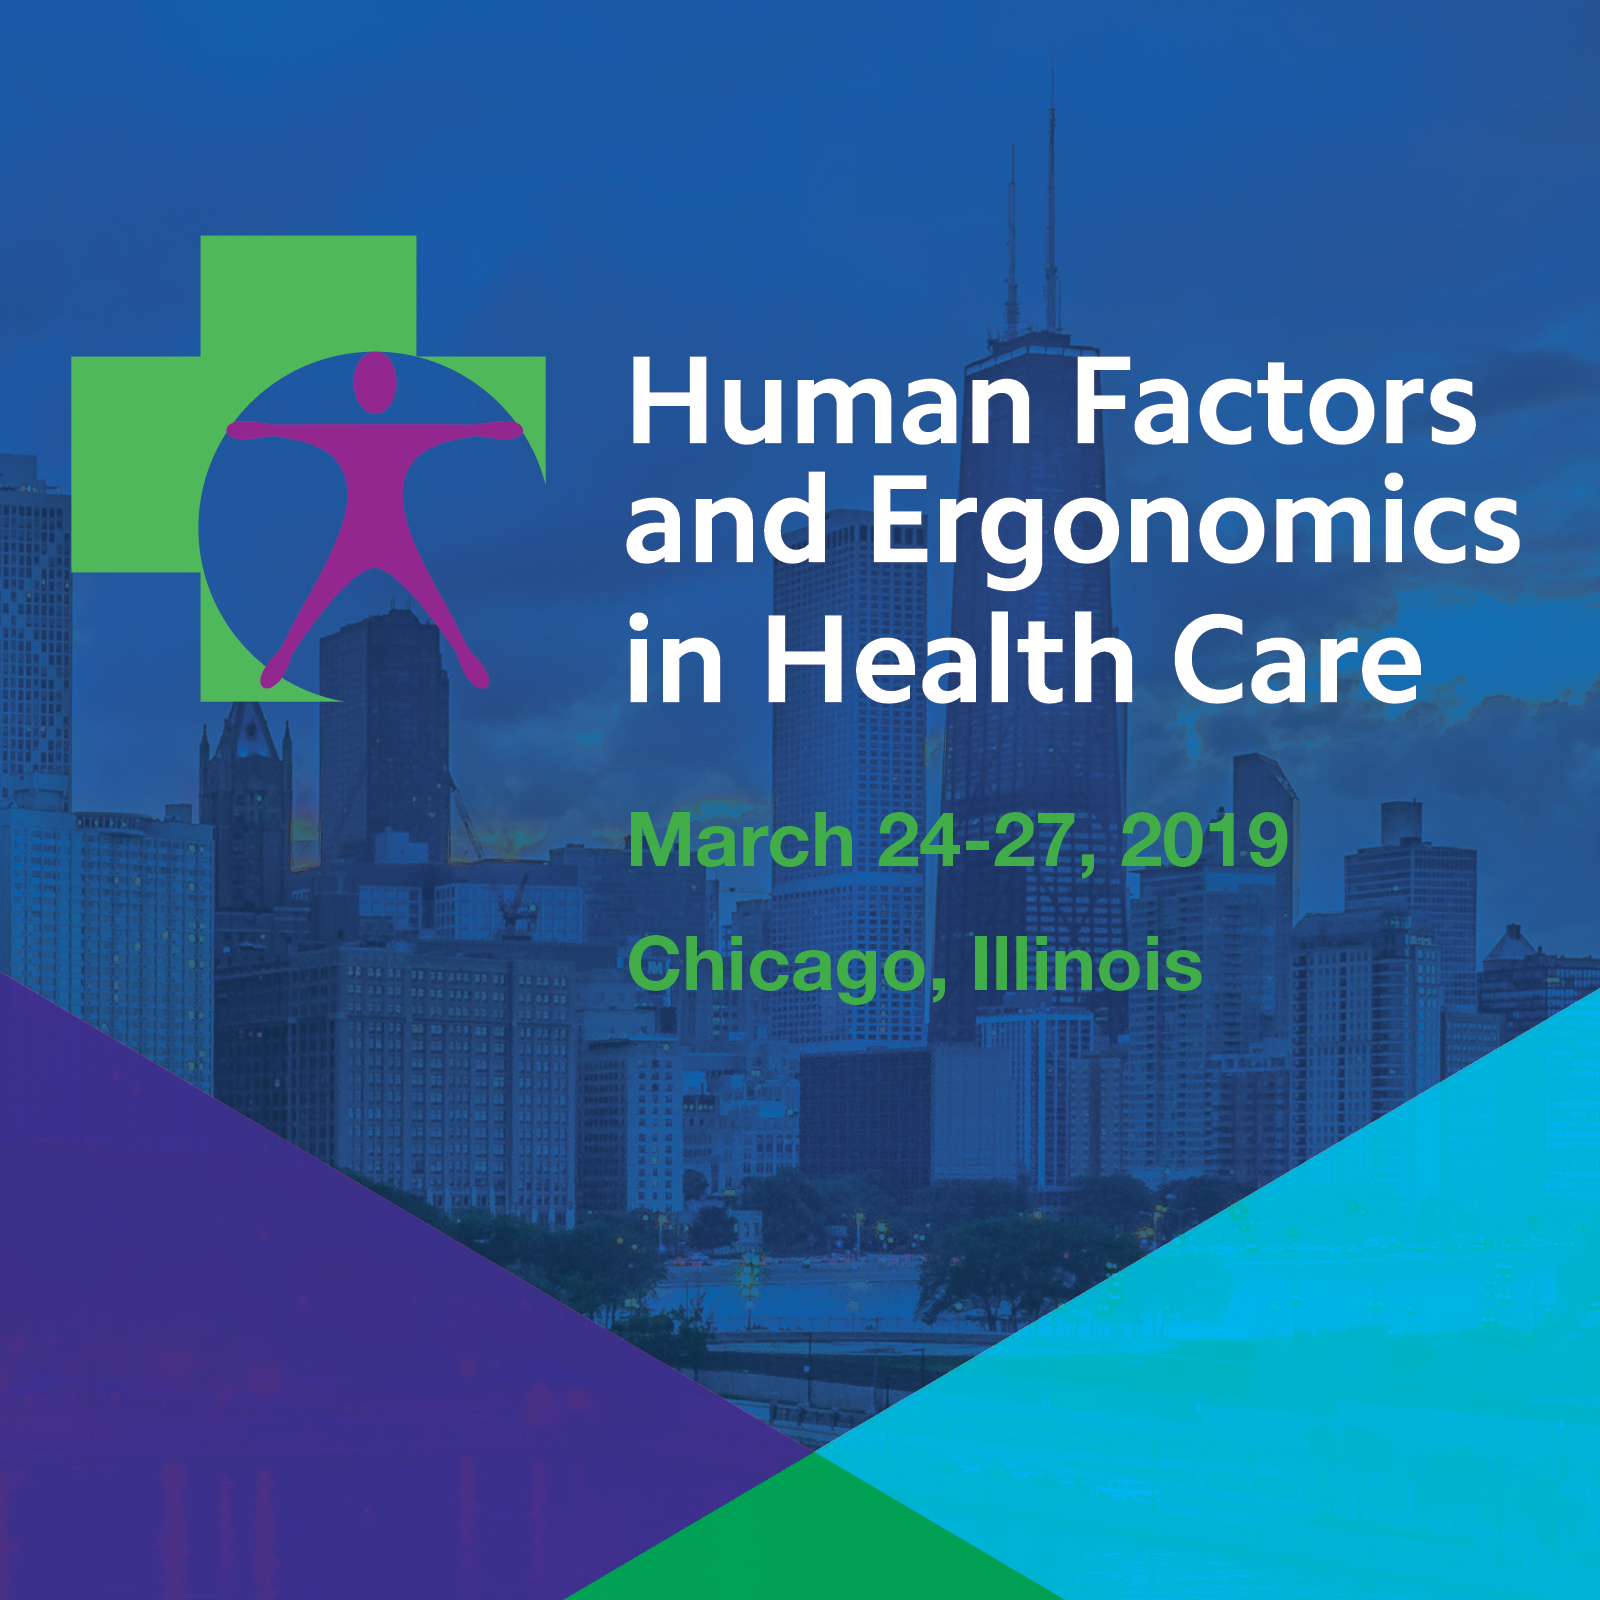 HFES 2019 Healthcare Symposium